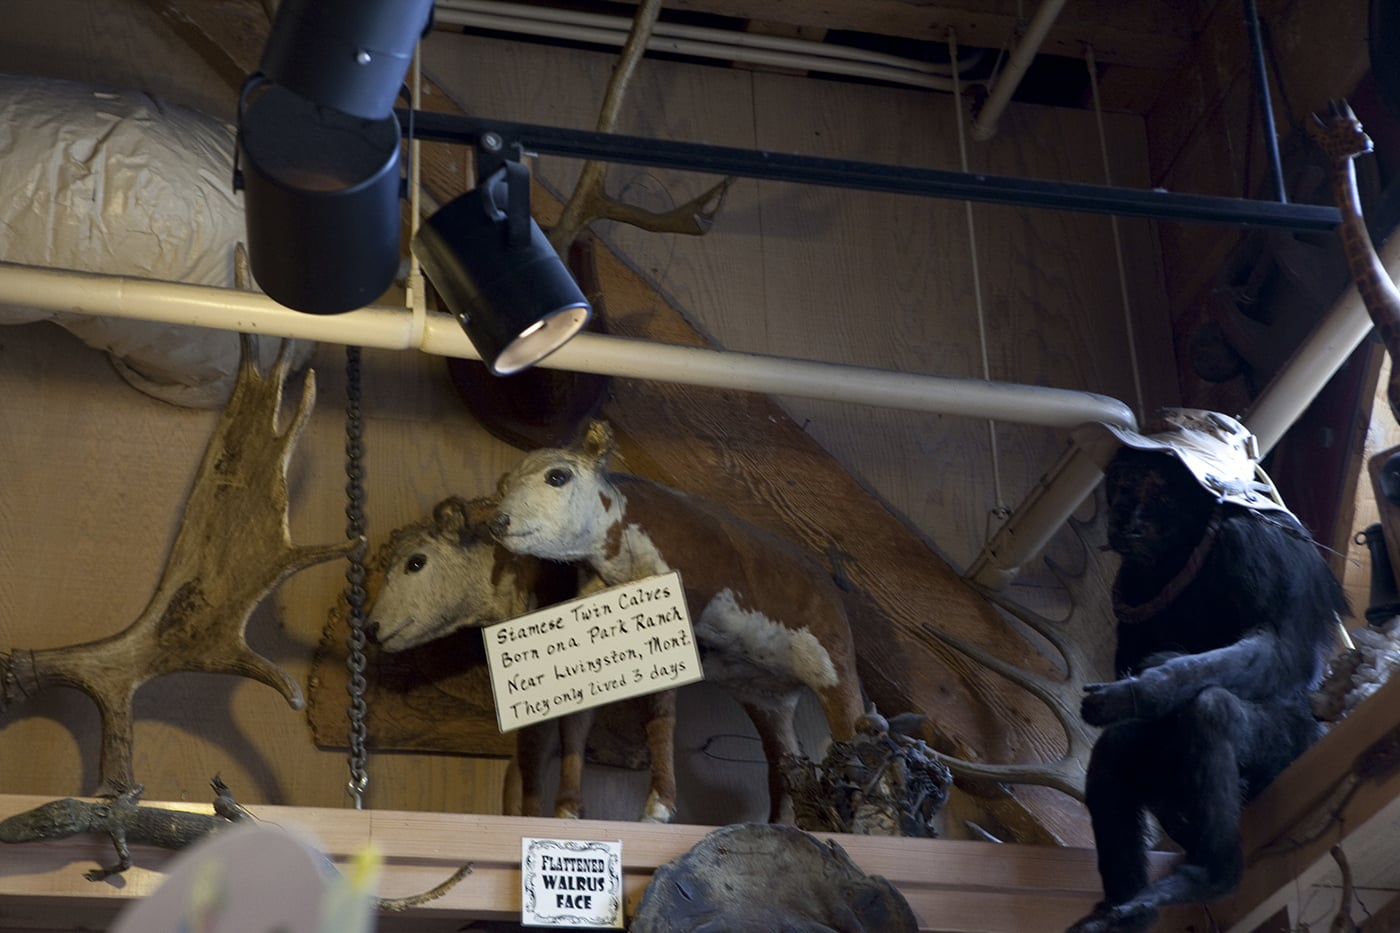 Siamese twin calves at Ye Olde Curiosity Shoppe in Seattle, Washington